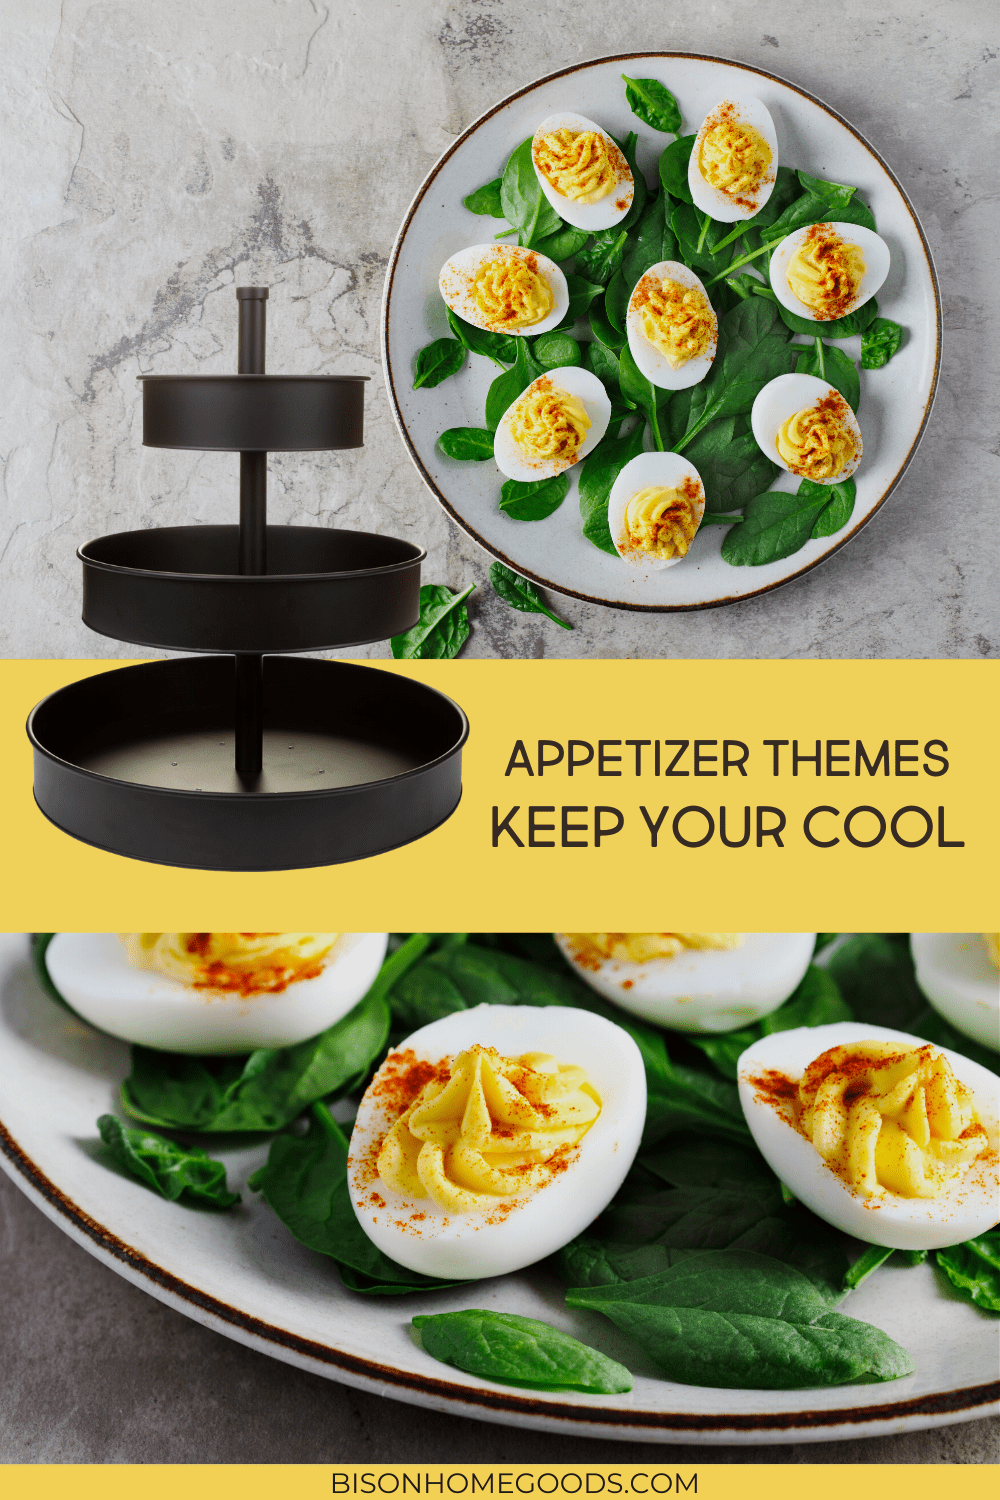 4 Appetizer Themes for Your Galvanized 3-Tier Tray - Keep Your Cool